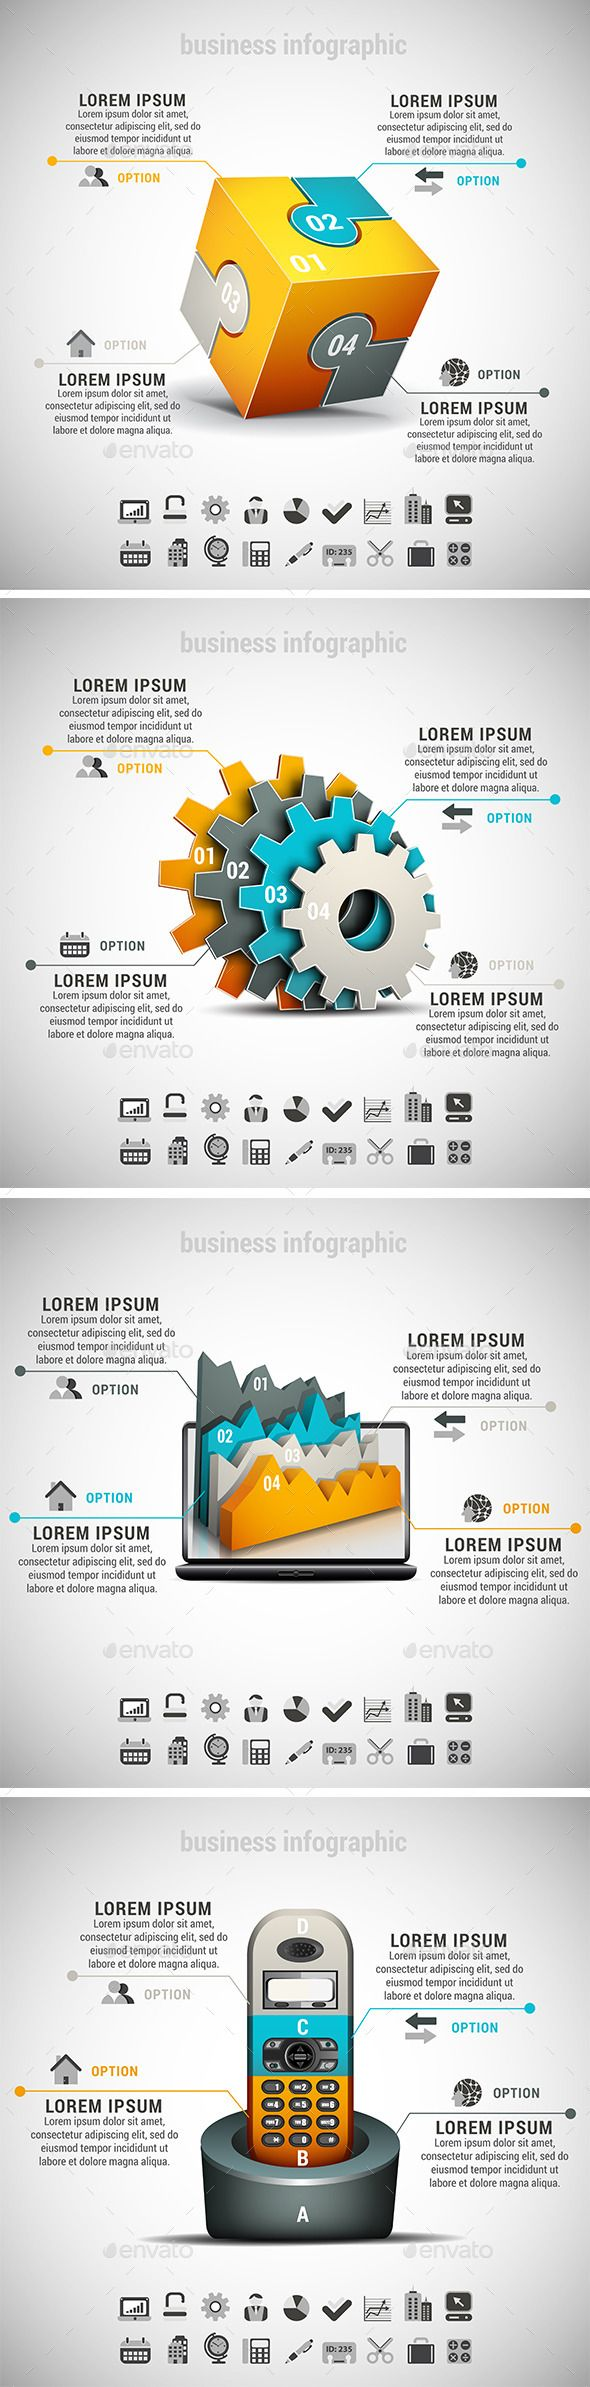 Business infographic : 4 in 1 Business Infographics Bundle  Photoshop PSD #corporate #illustration